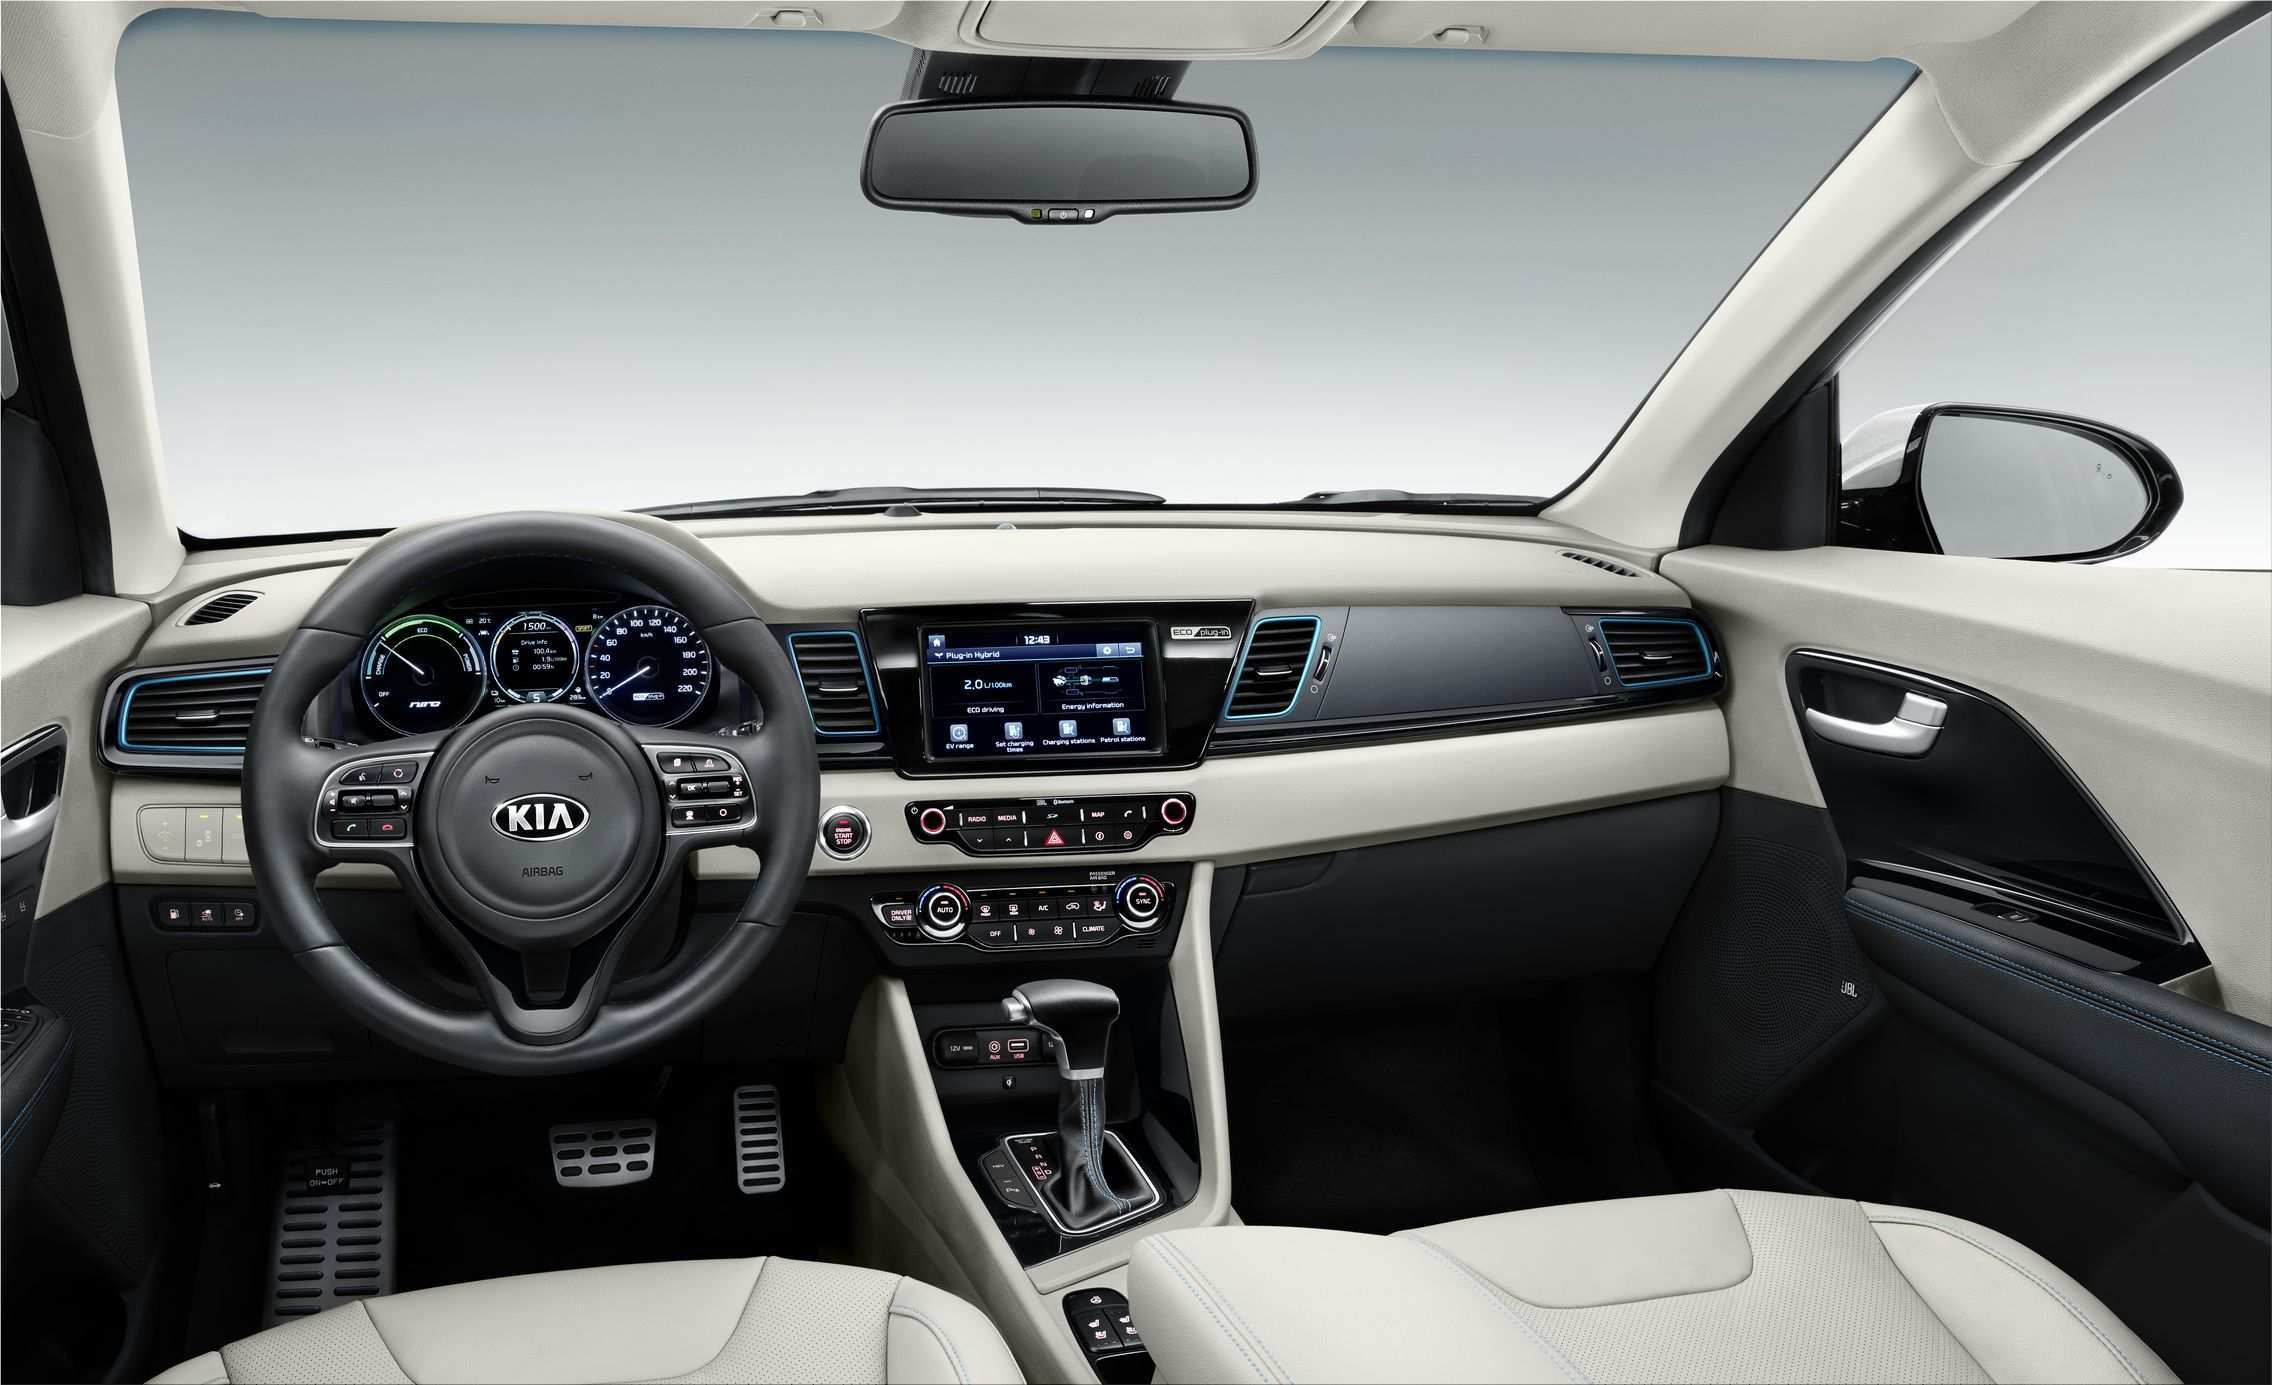 29 All New Kia Plug In Hybrid 2020 Release Date And Concept